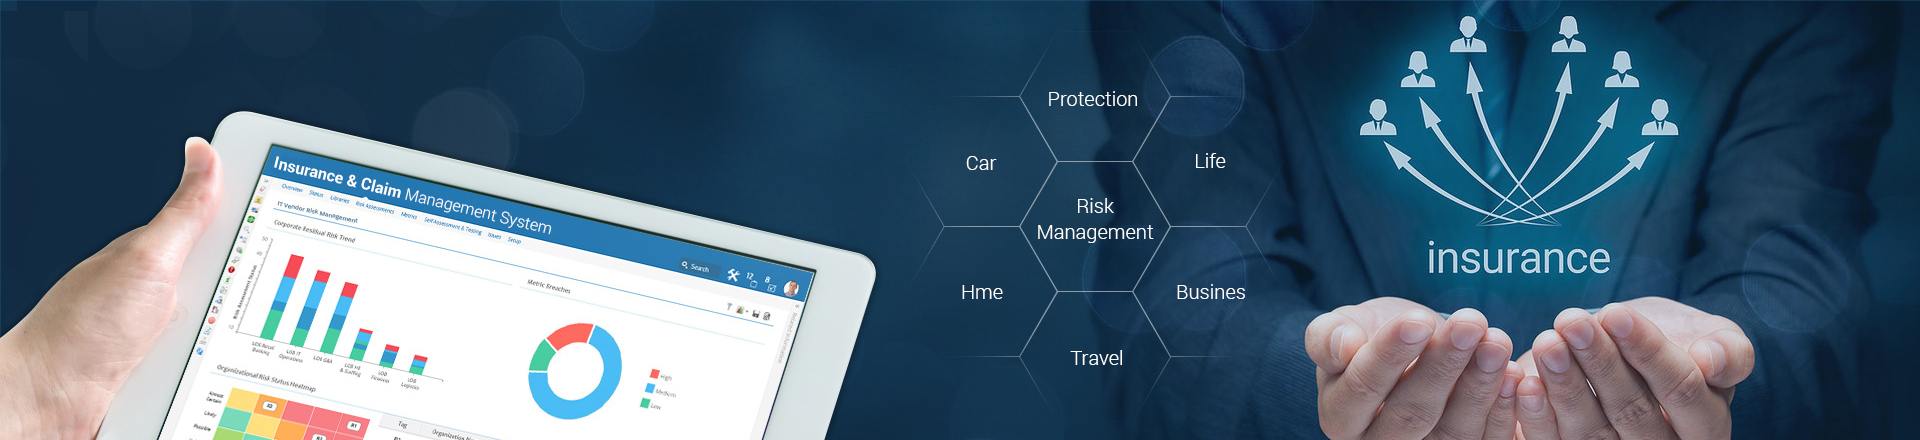 Insurance & Claim Management System Software Development